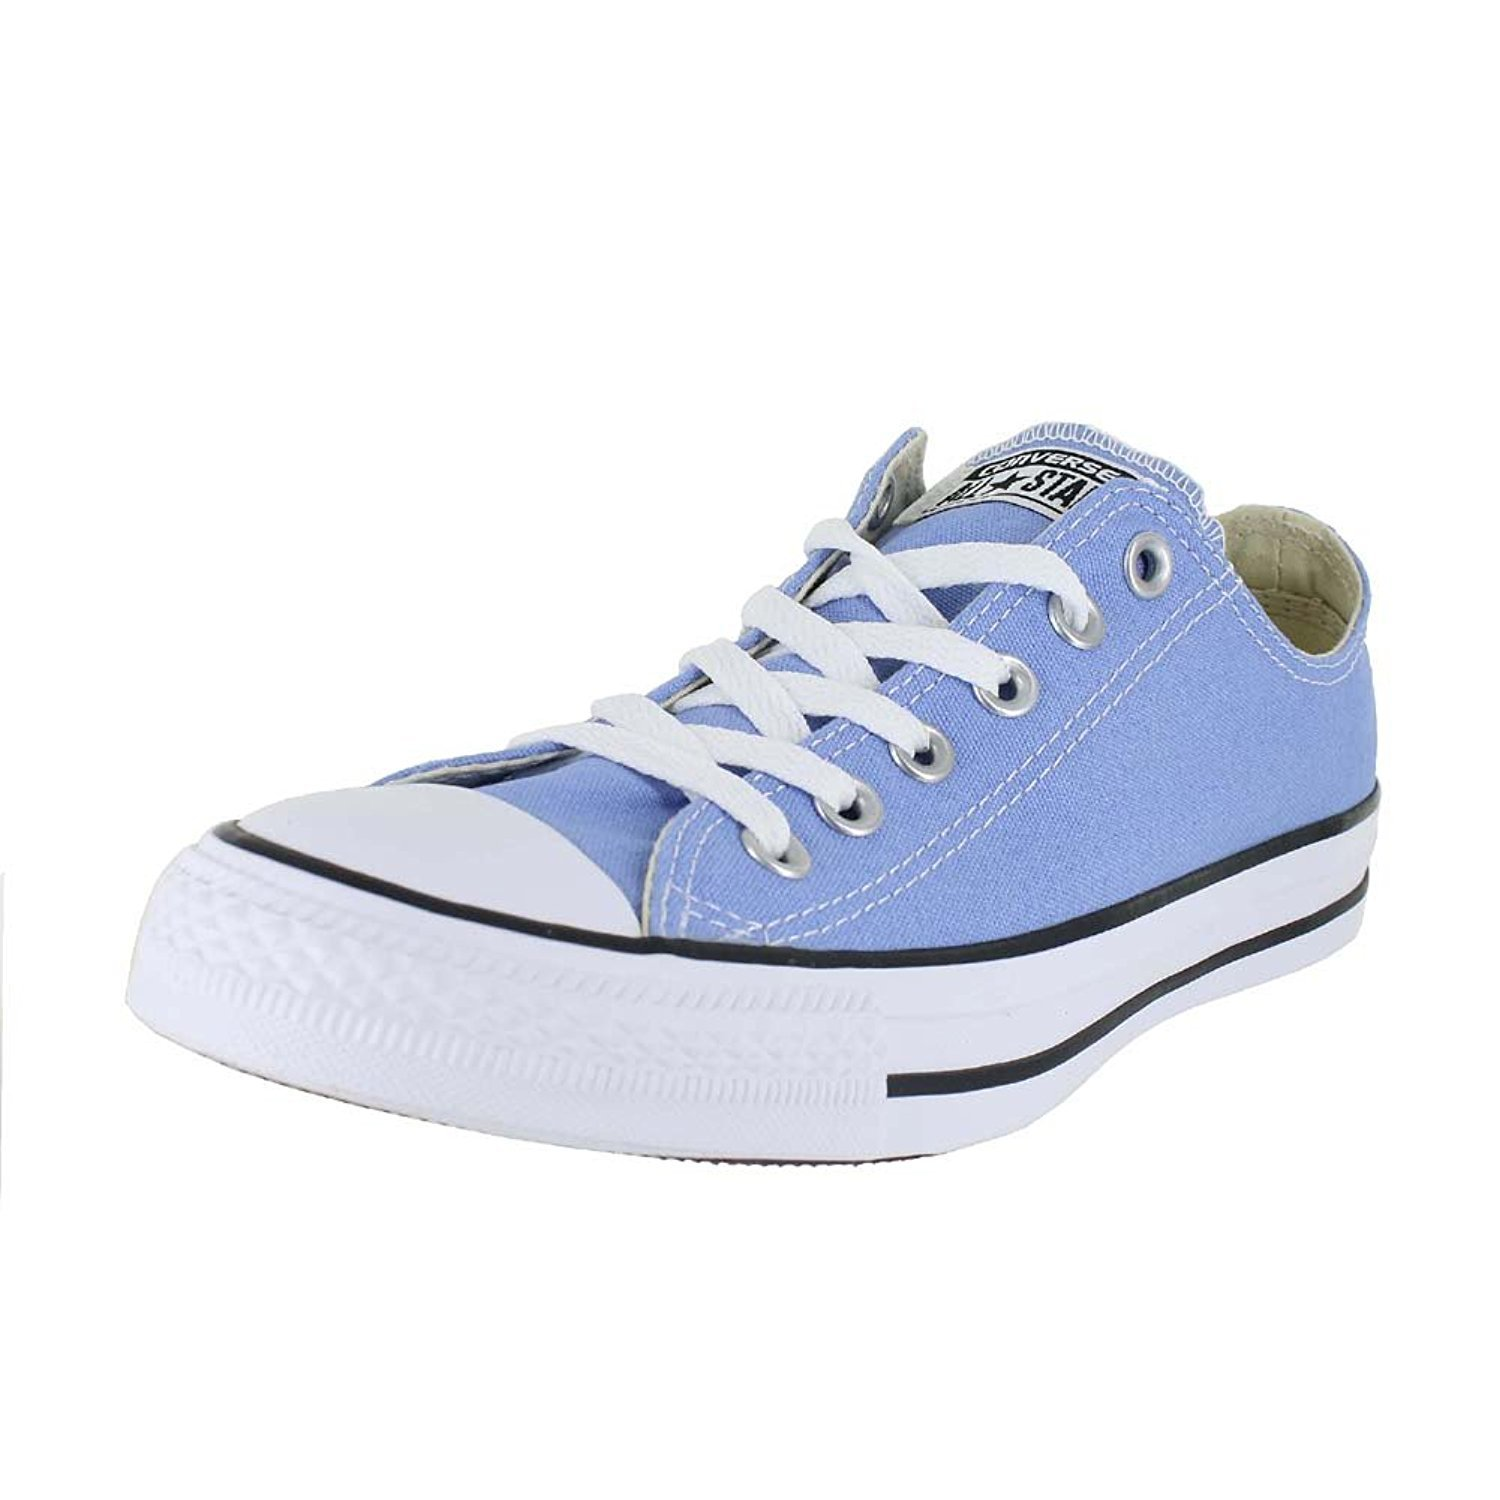 Converse Ctas Core Ctas Core Hi, Baskets mode mixte 19765 adulte 7c95820 - shopssong.space